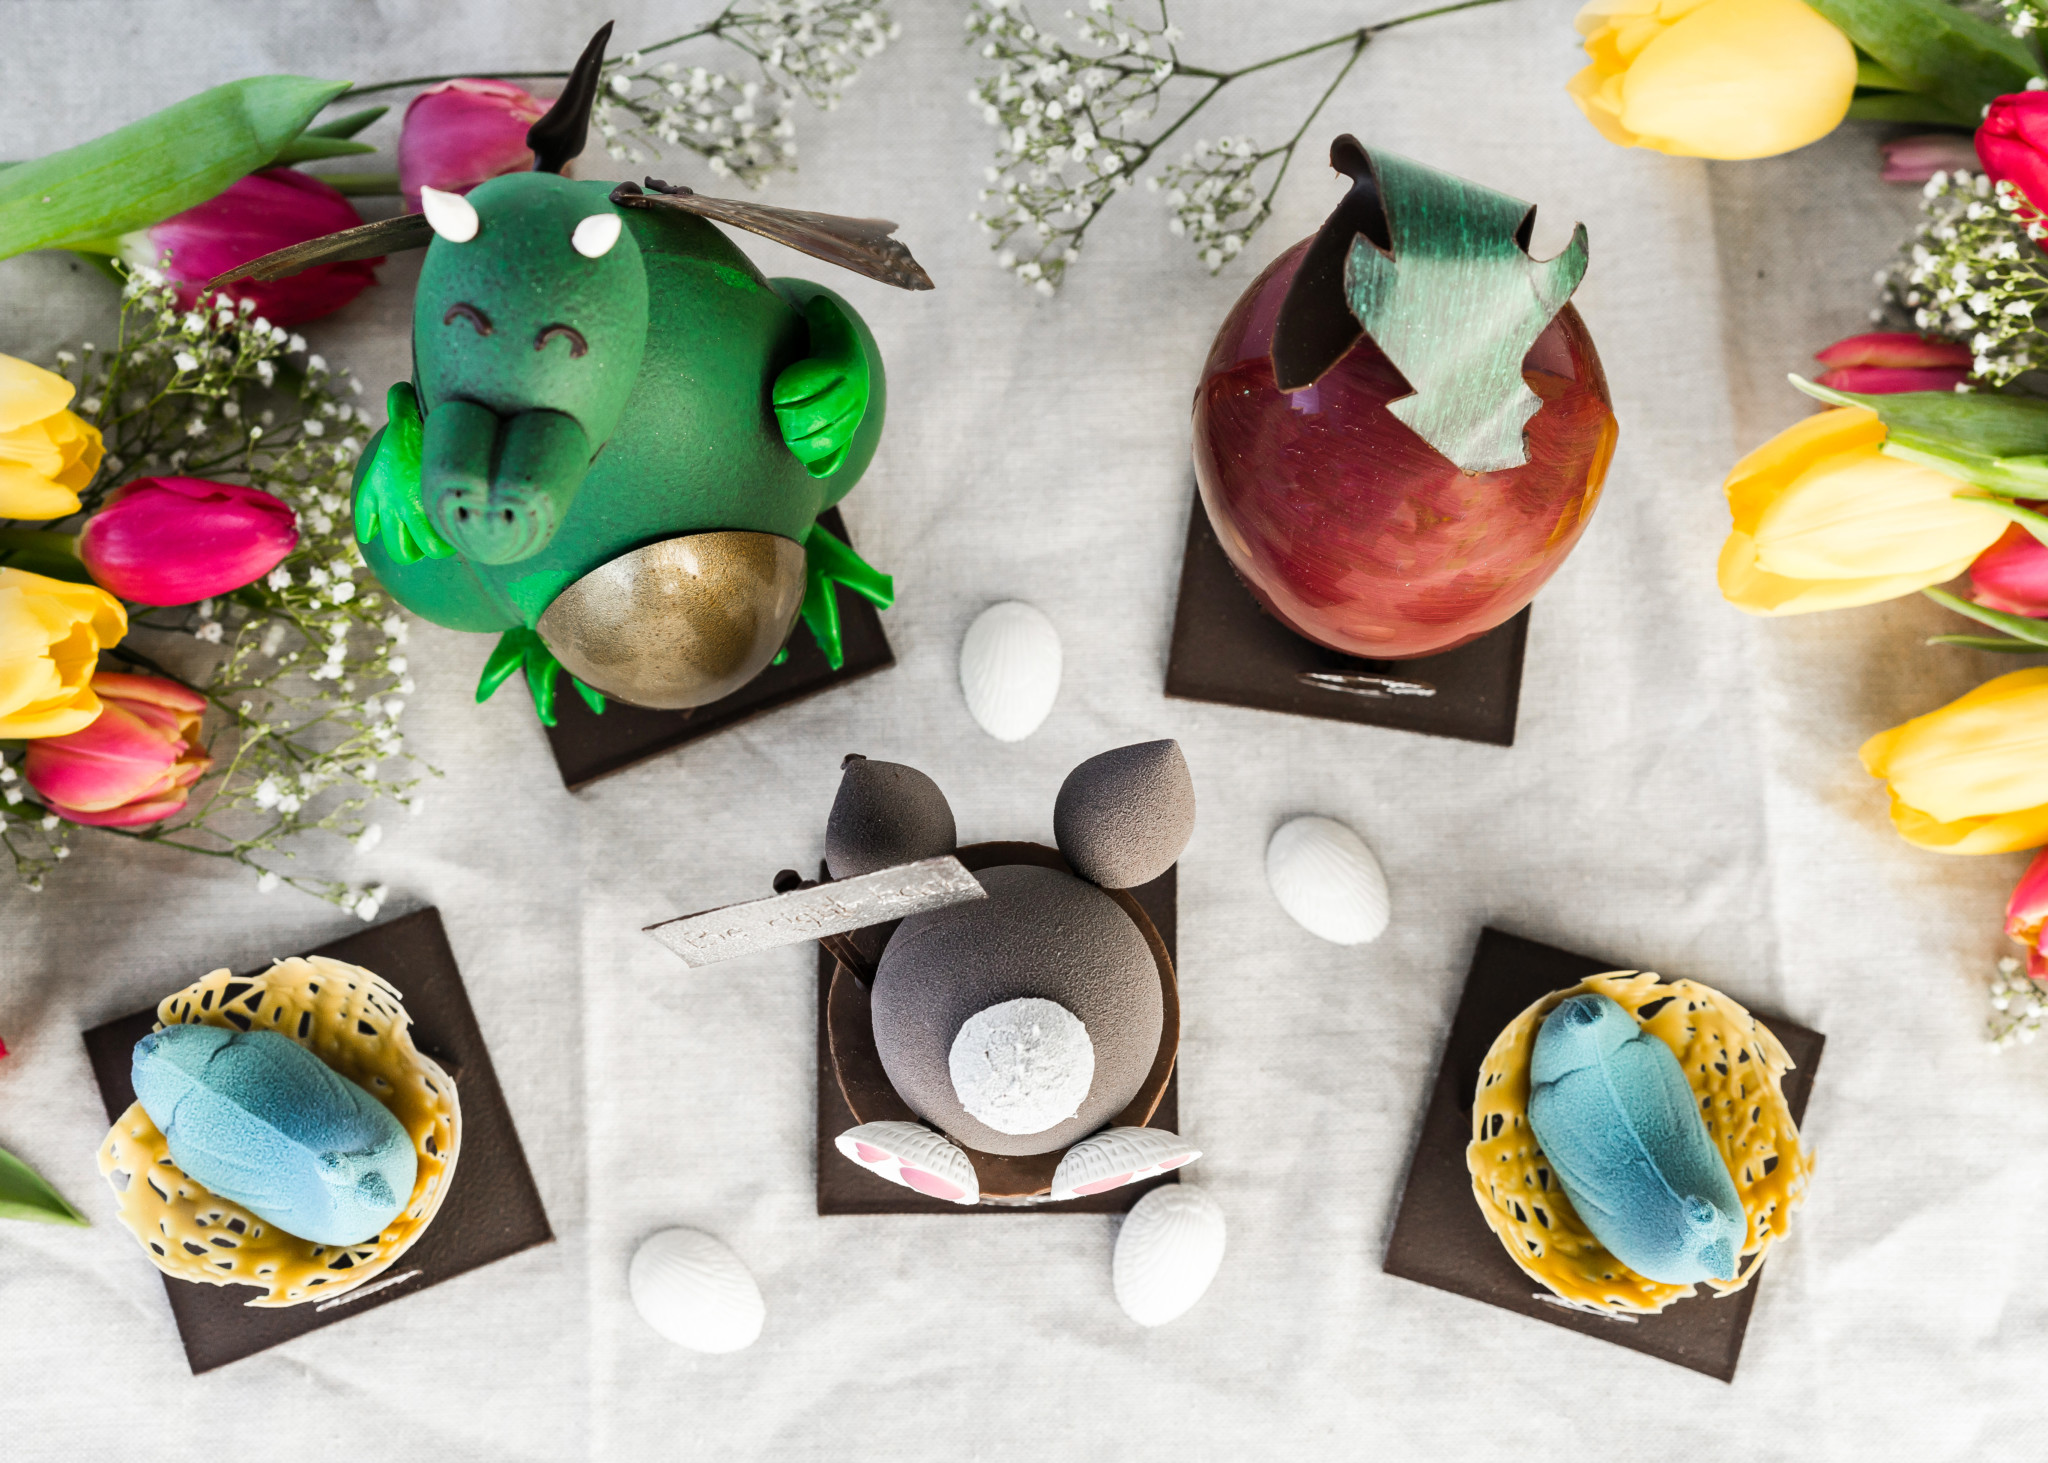 DON'T CRACK THESE EGGS Chez Christophe unveils 2018 Easter Collection